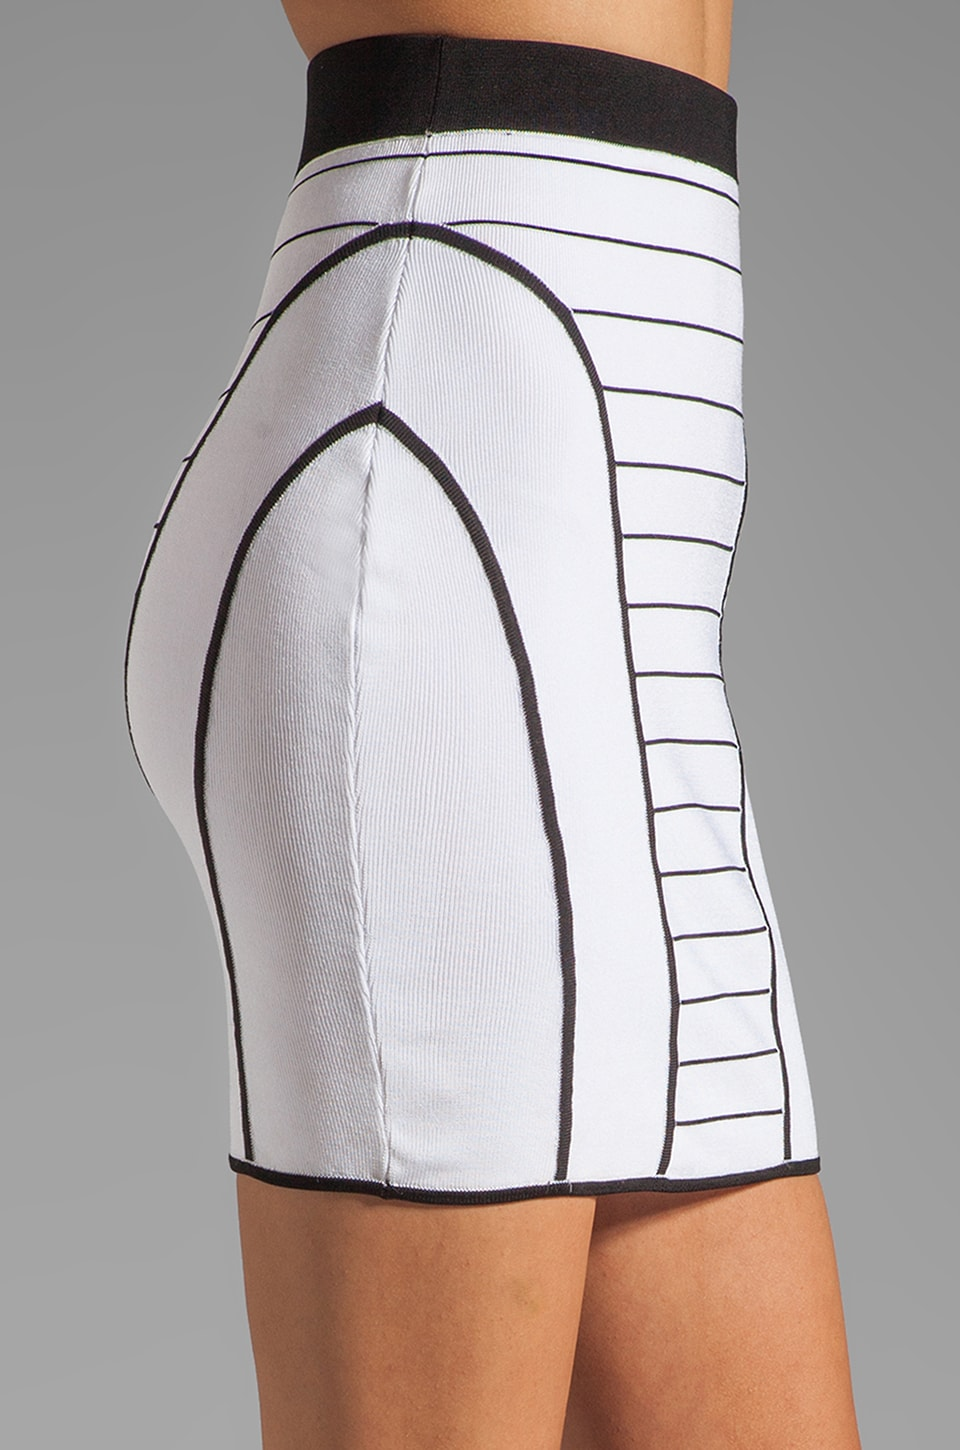 MILLY January Knits Camille Pencil Skirt in White/Black